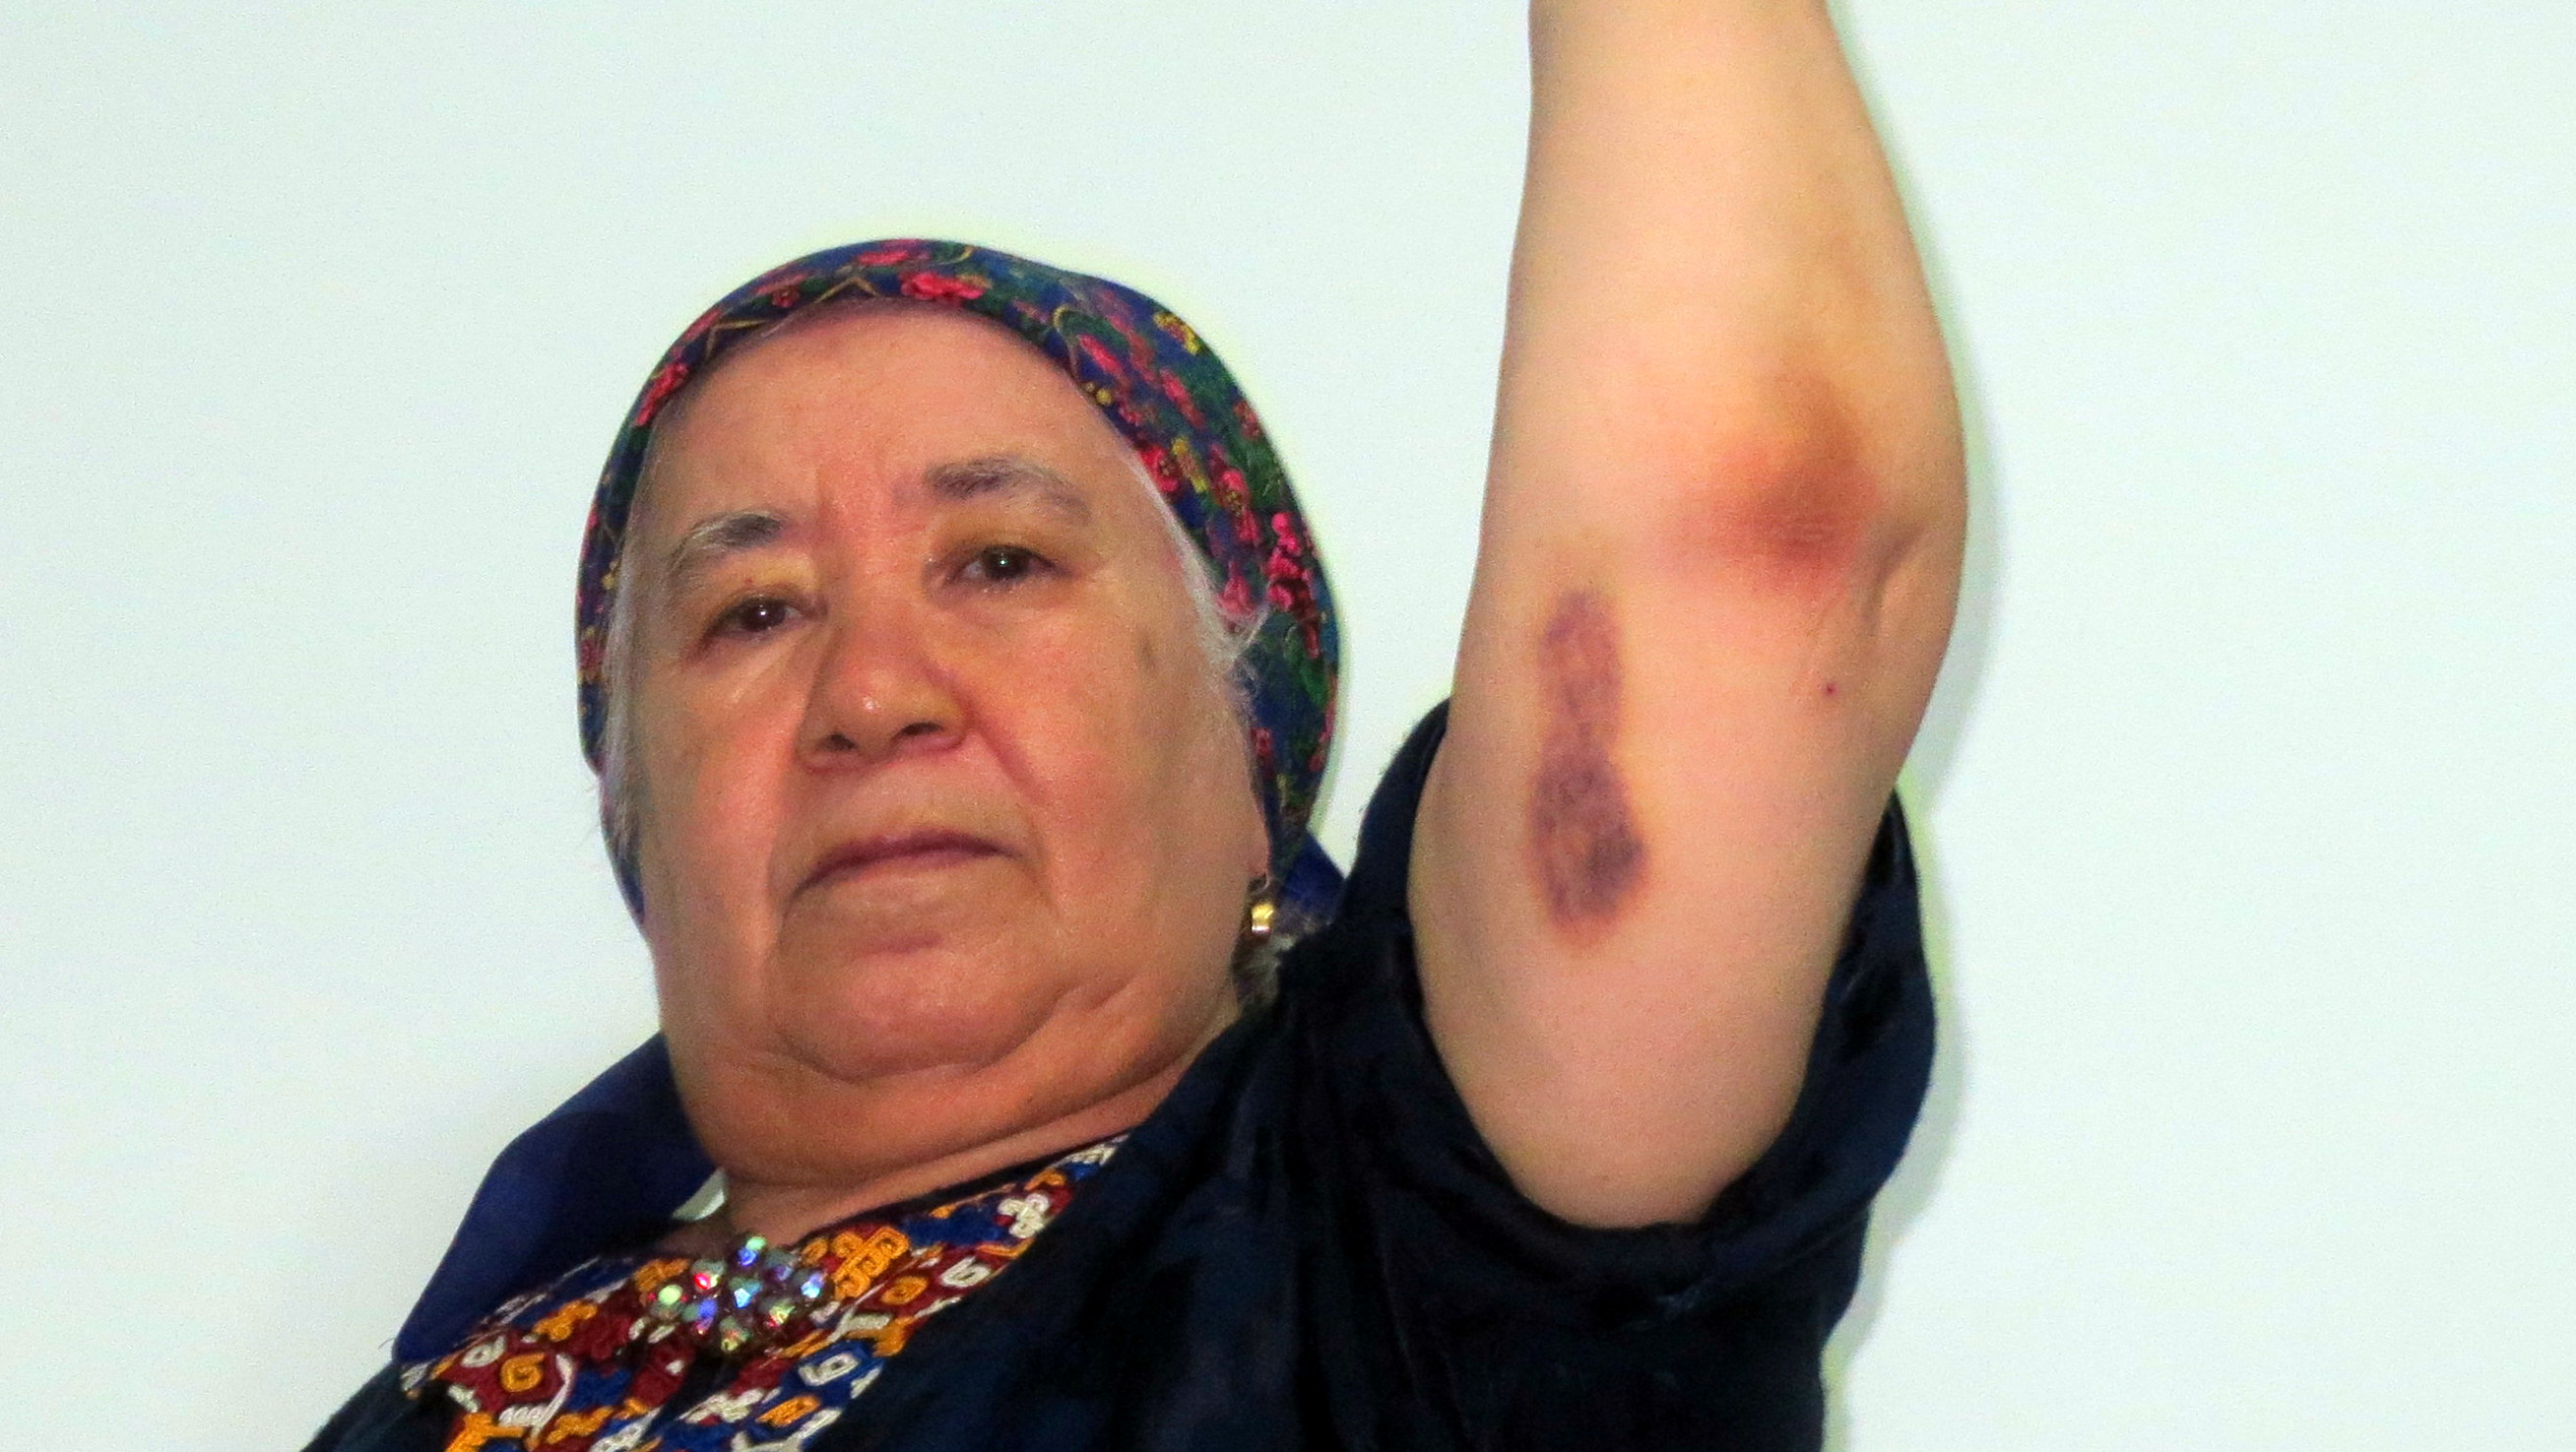 A woman raises her arm to show bruising